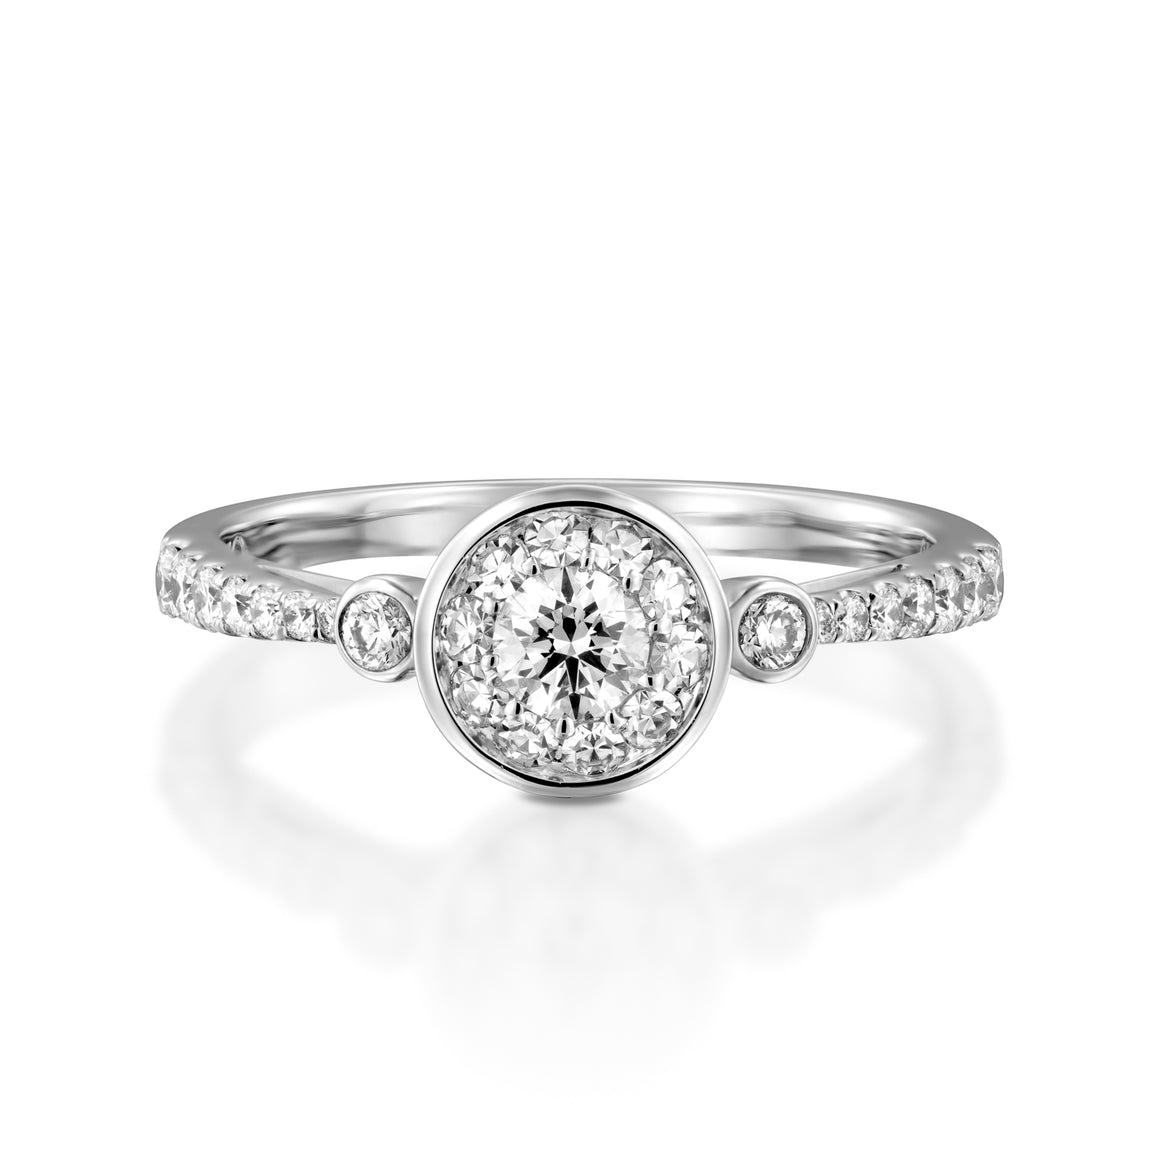 RNH564WC Engagement 18K White Ring -  Halo Ring